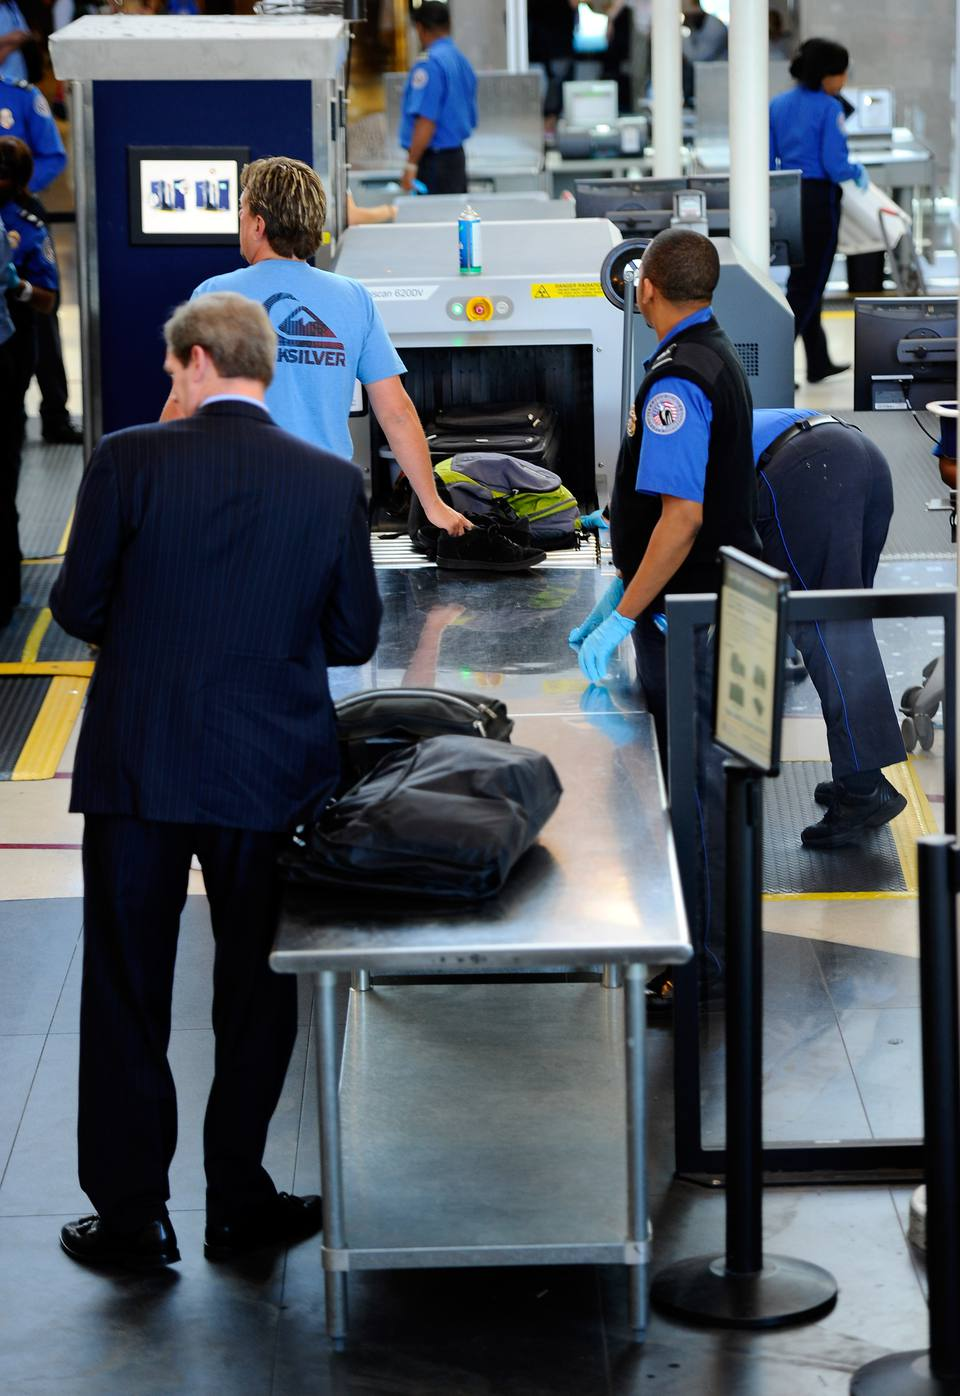 Theft from airport security checkpoints is on the rise. Protect yourself by following a few simple tips.